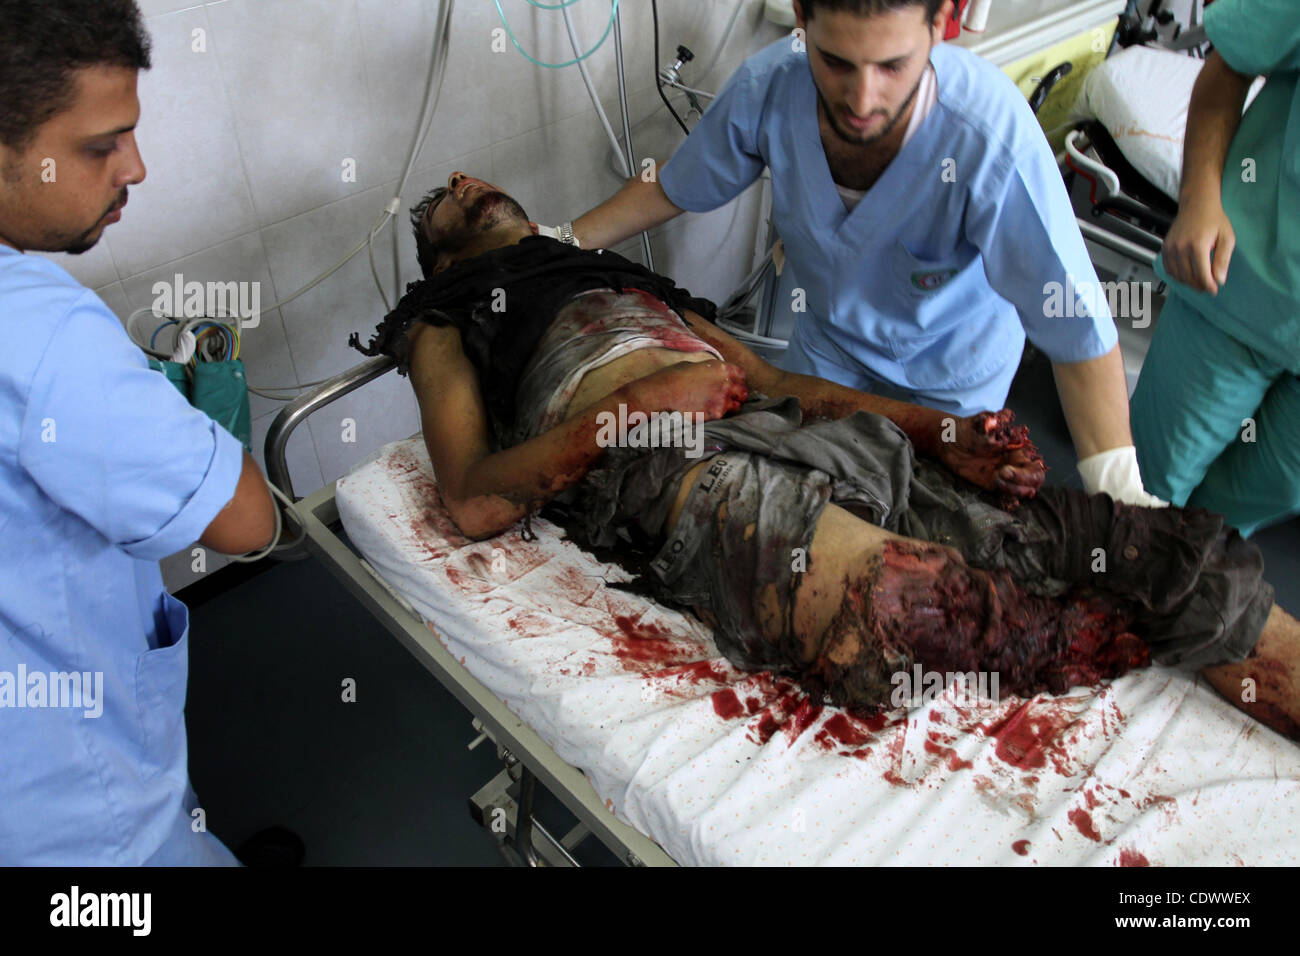 palestinian doctors rush a wounded man into al shifa hospital in gaza stock photo royalty free. Black Bedroom Furniture Sets. Home Design Ideas